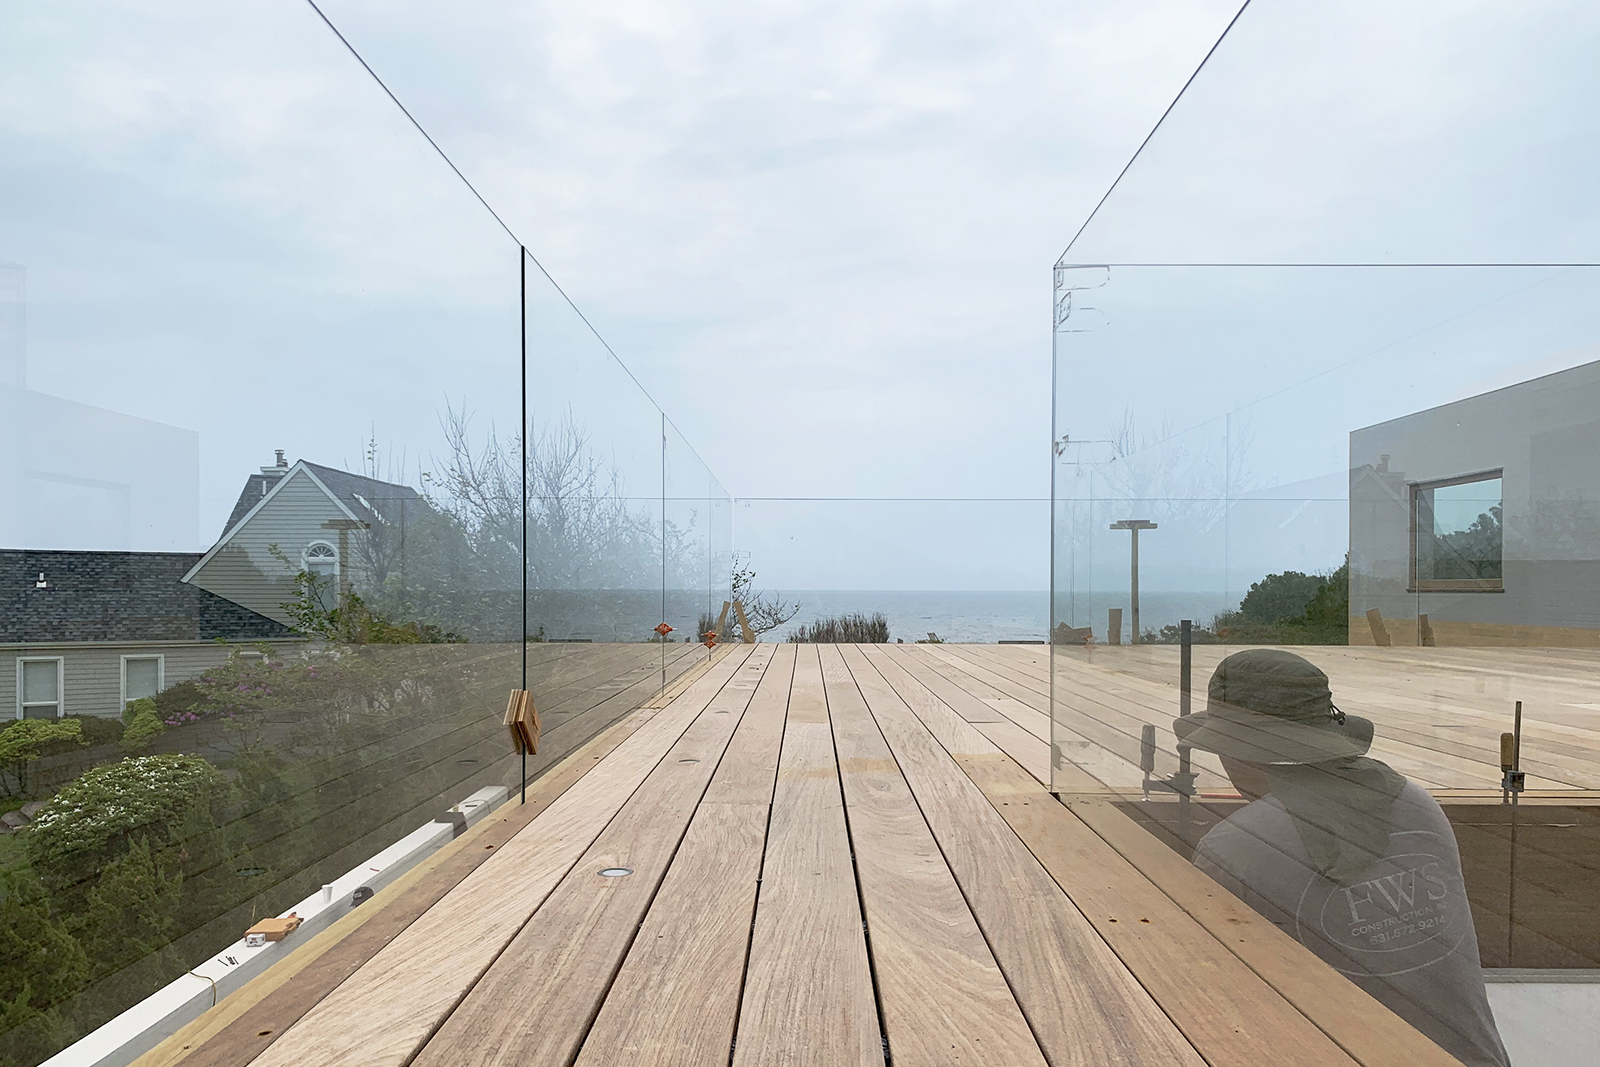 09-res4-resolution-4-architecture-surfside-modern-renovation-montauk-hamptons-ny-roof-deck.jpg